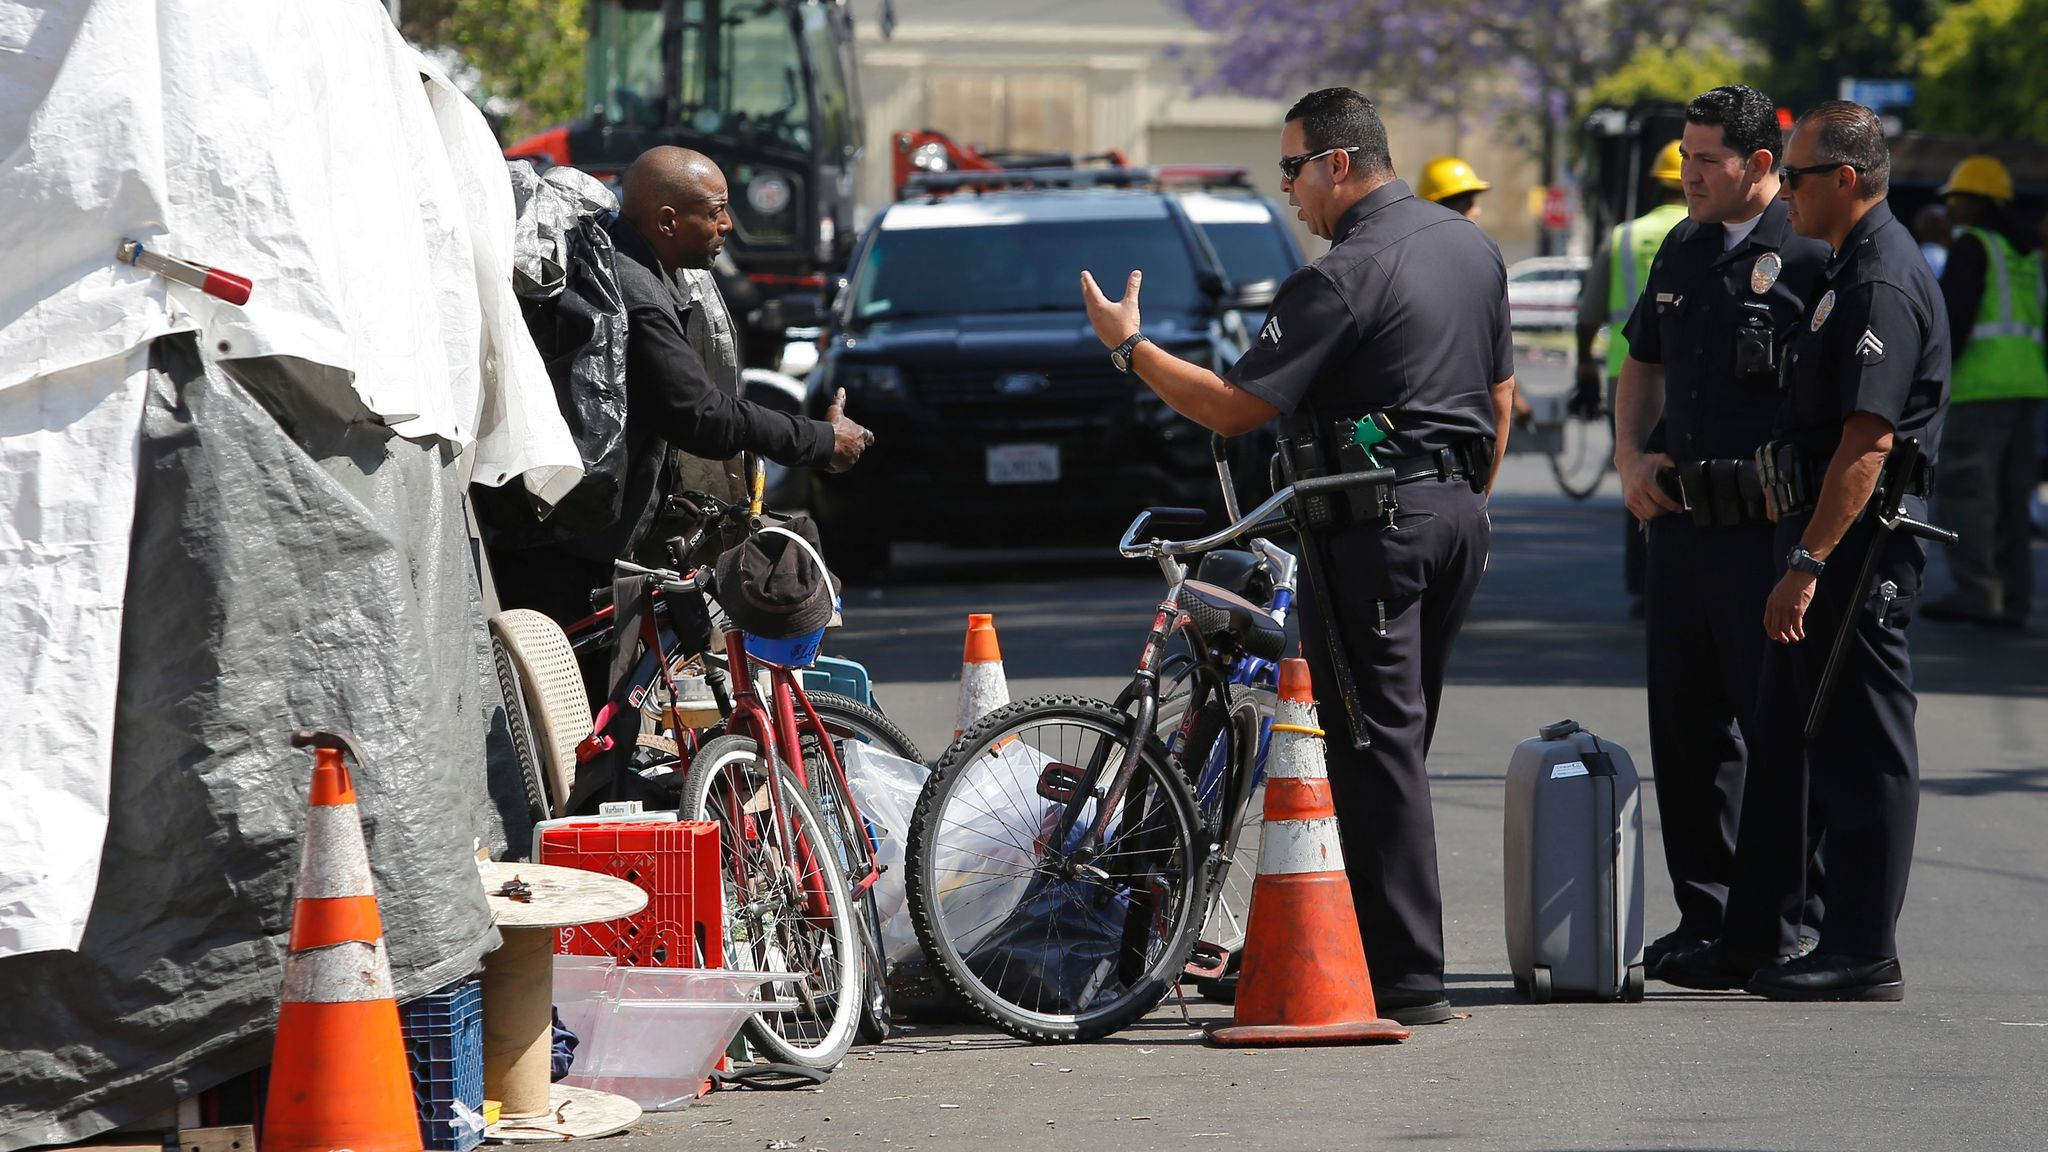 LAPD officers speaks with a man who is living in an encampment area in Los Angeles. Sanitation workers later cleaned the area.